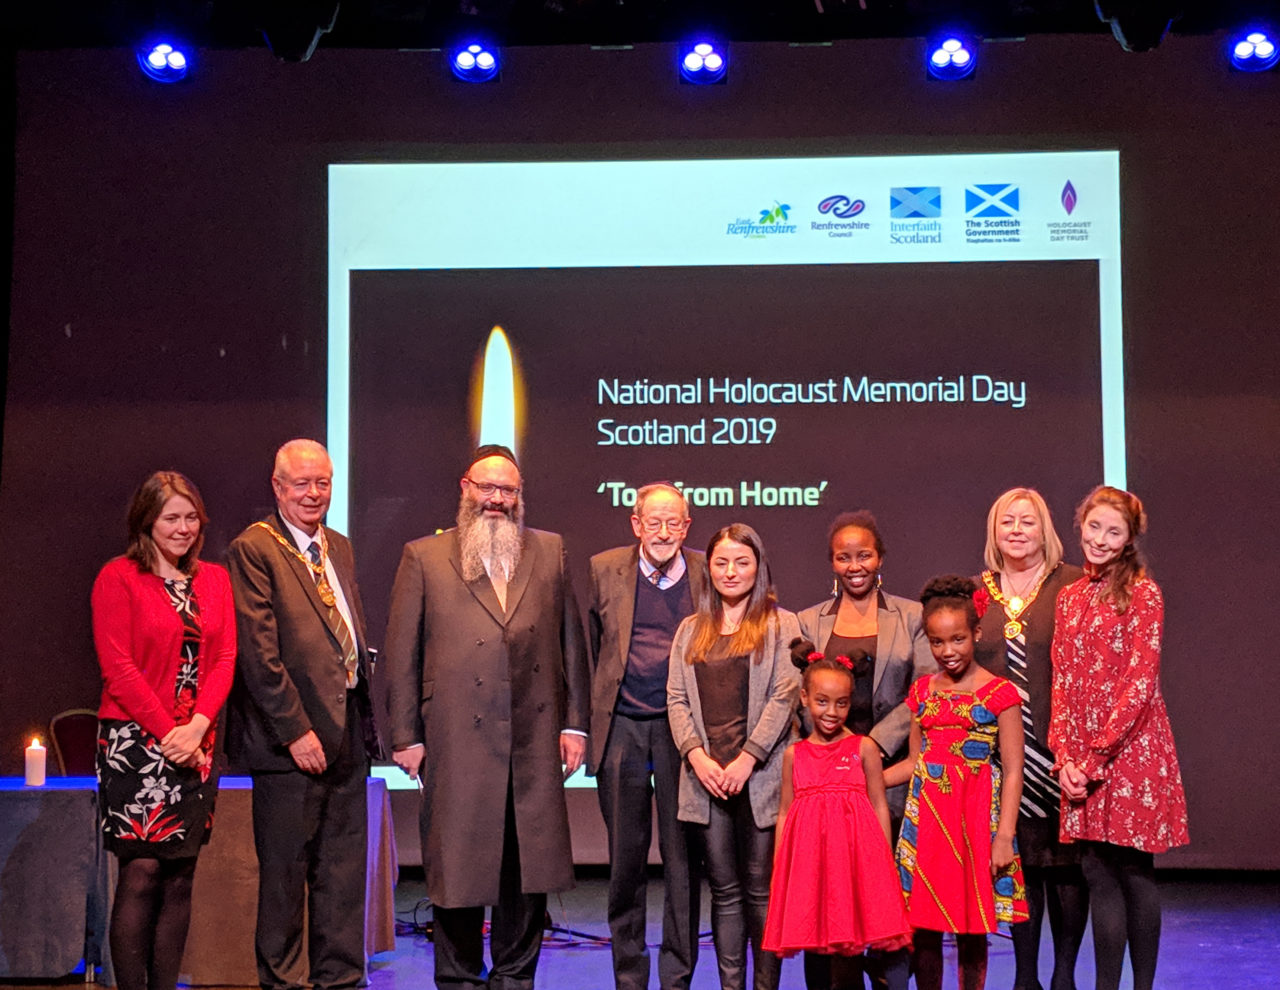 SCOTLAND NATIONAL COMMEMORATIVE EVENT FOR HOLOCAUST MEMORIAL DAY 2019